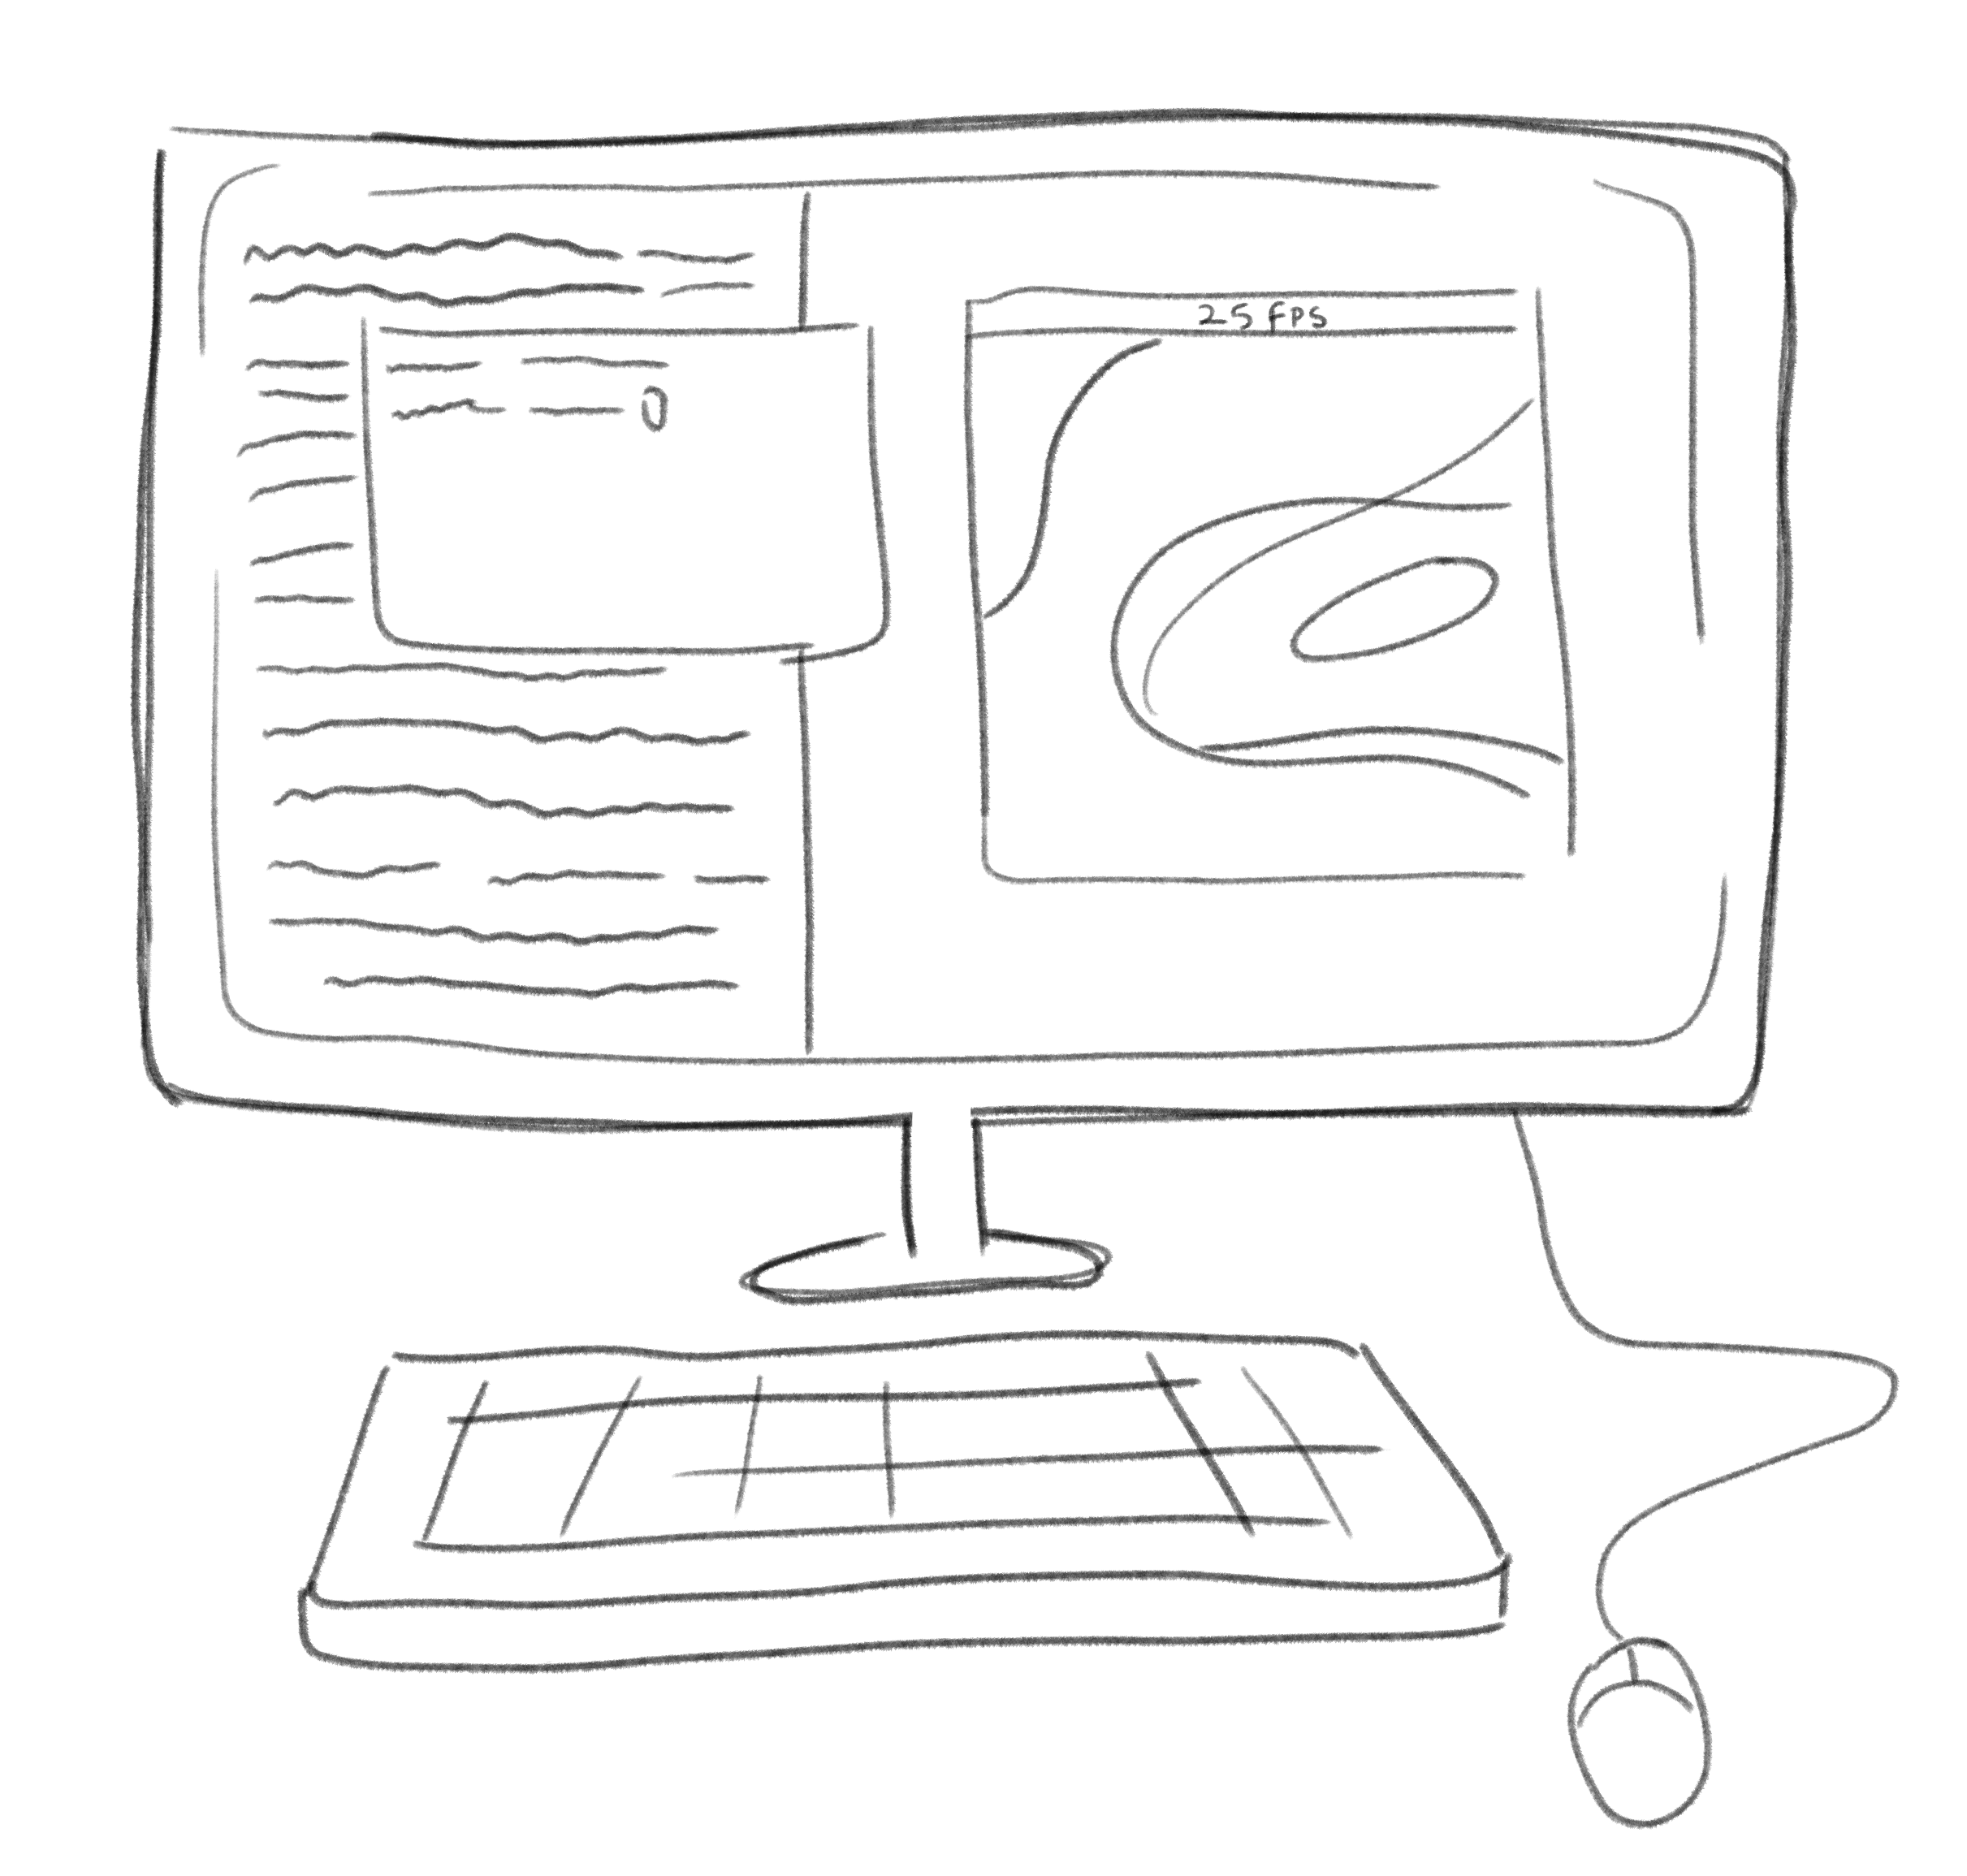 a computer drawing showing what our computer graphics research vaguely looked like